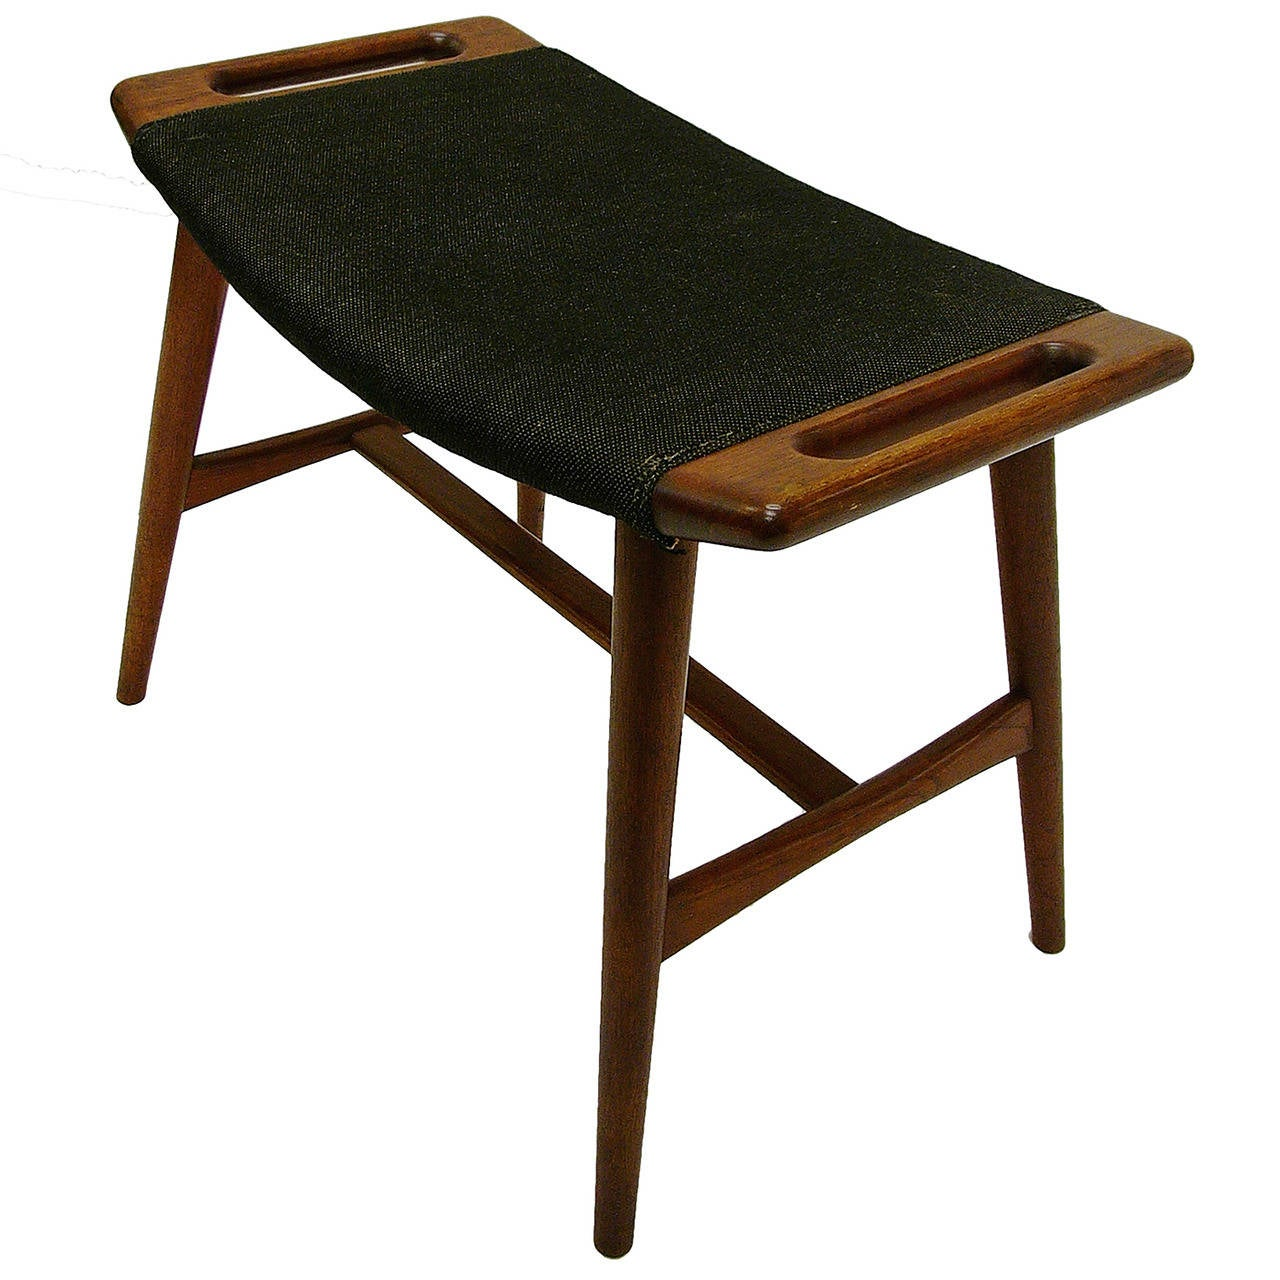 Hans wegner stuhl hans wegner cane stool at 1stdibs for Stuhl piano design